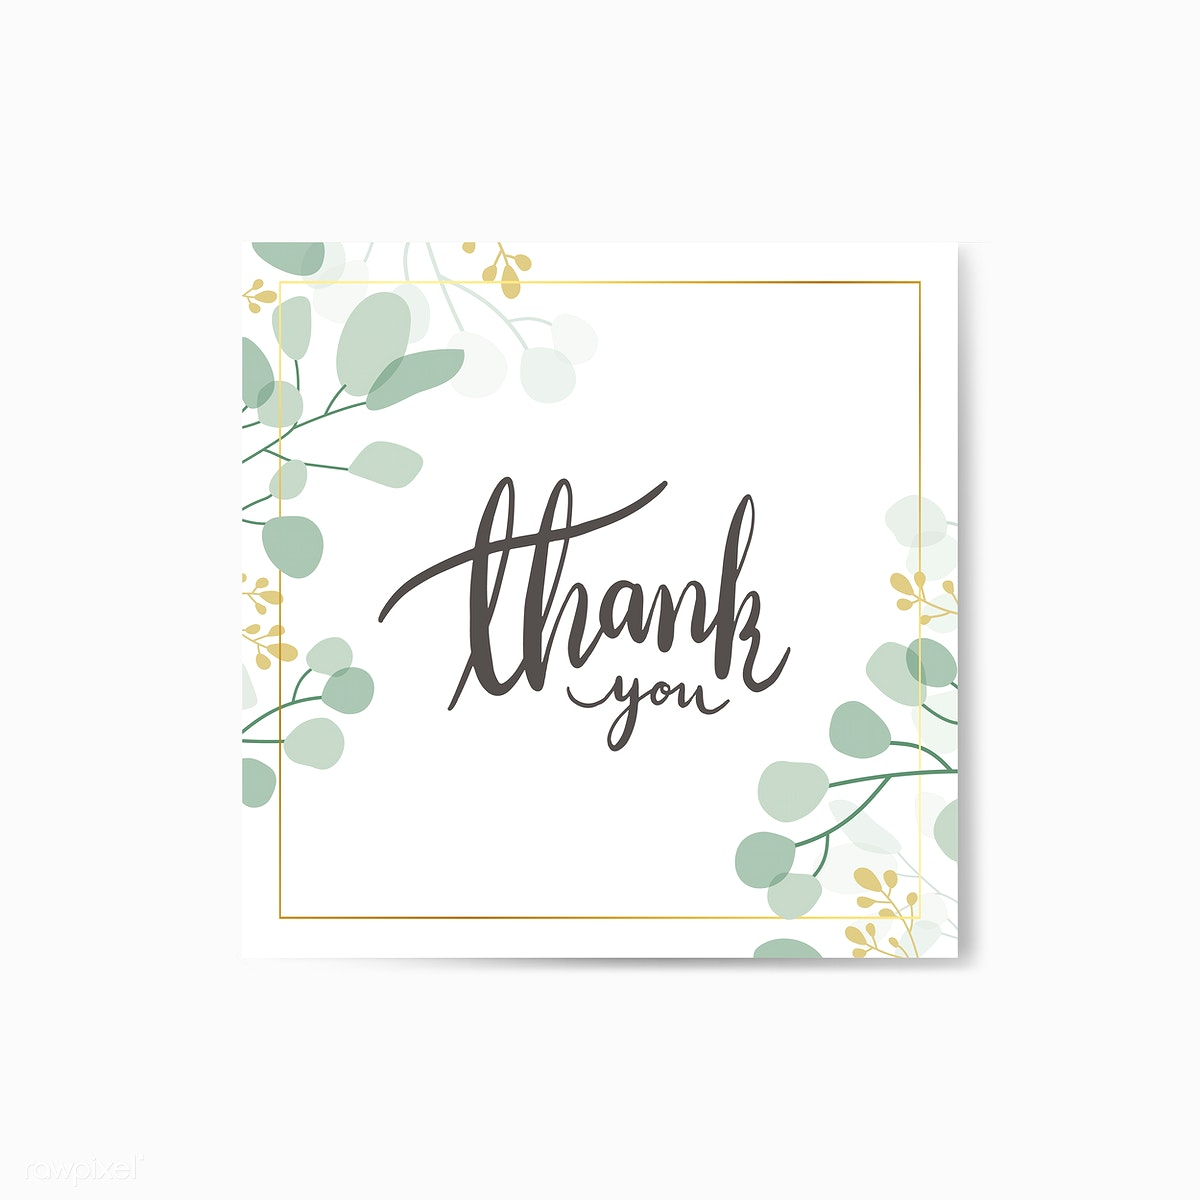 thank you card  royalty free stock illustration  545544